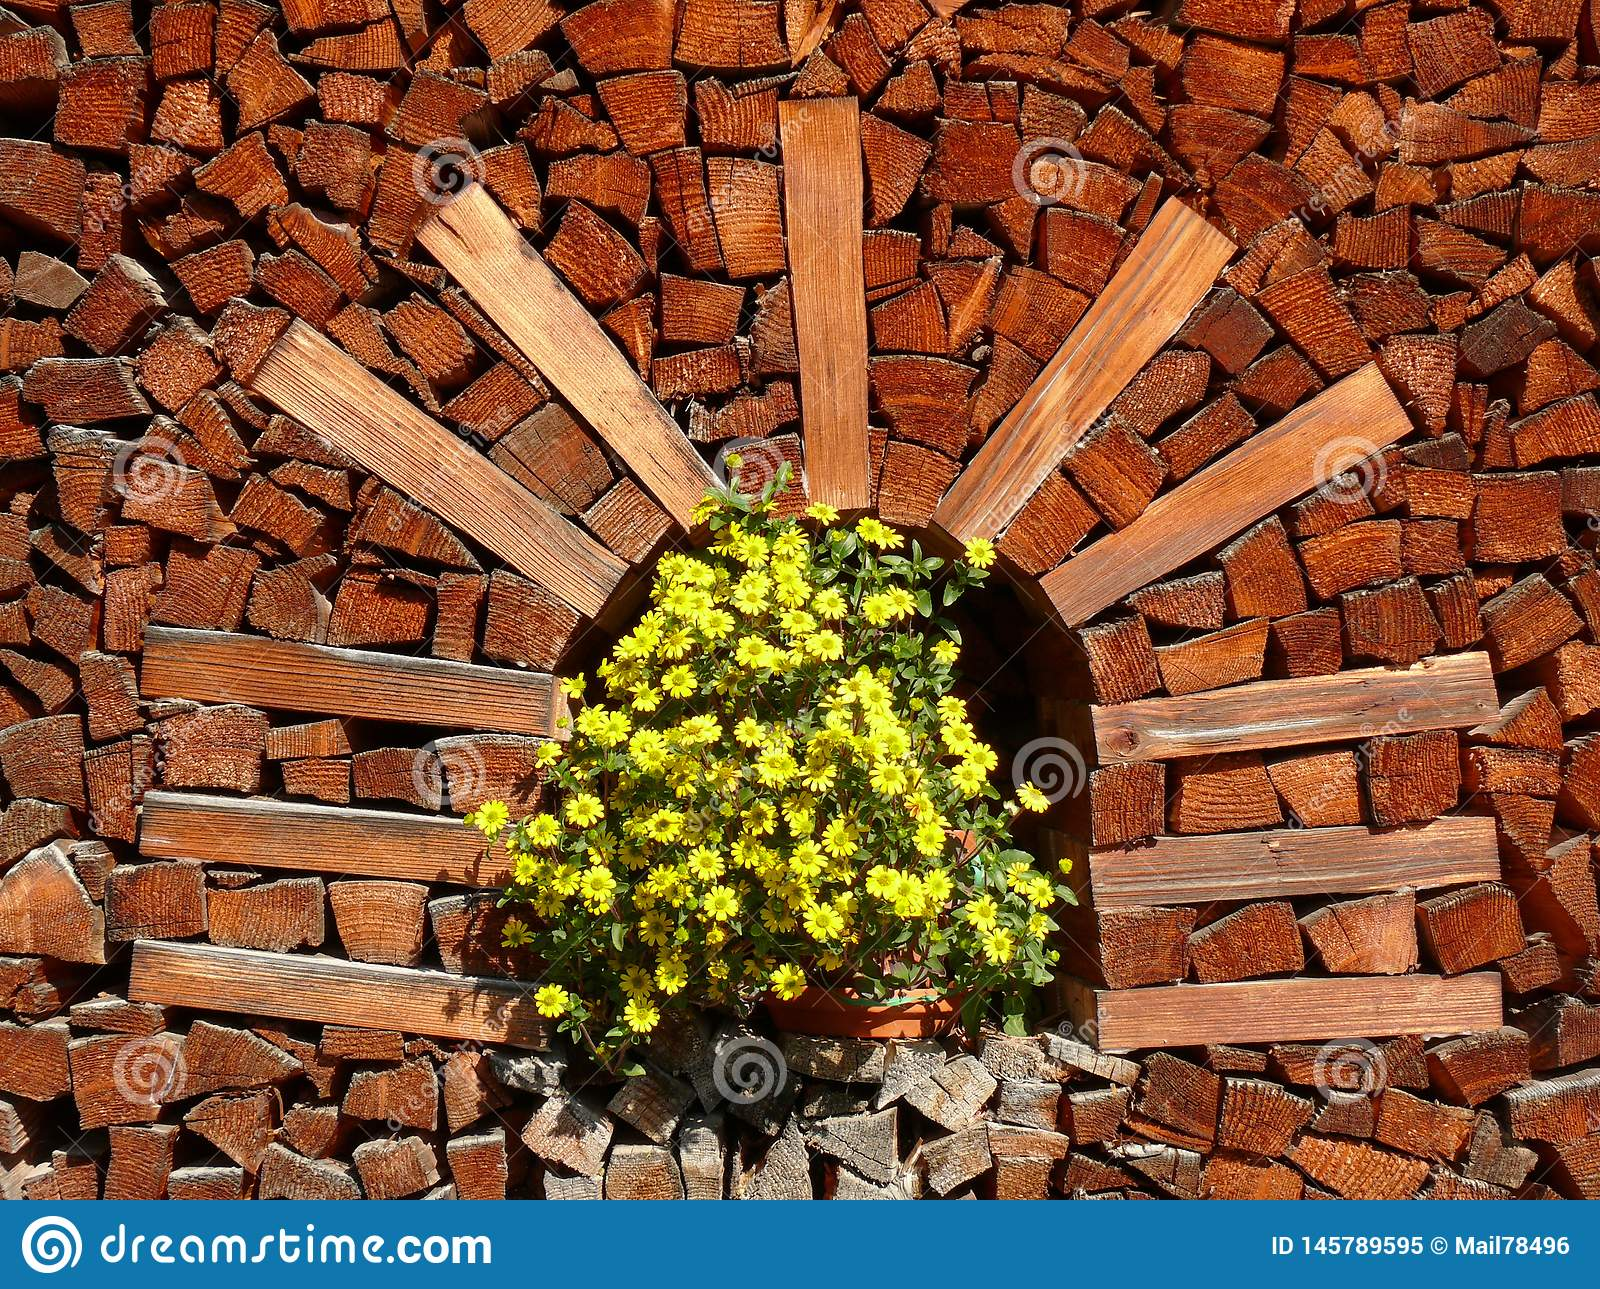 Pile of firewood with vase of yellow flowers